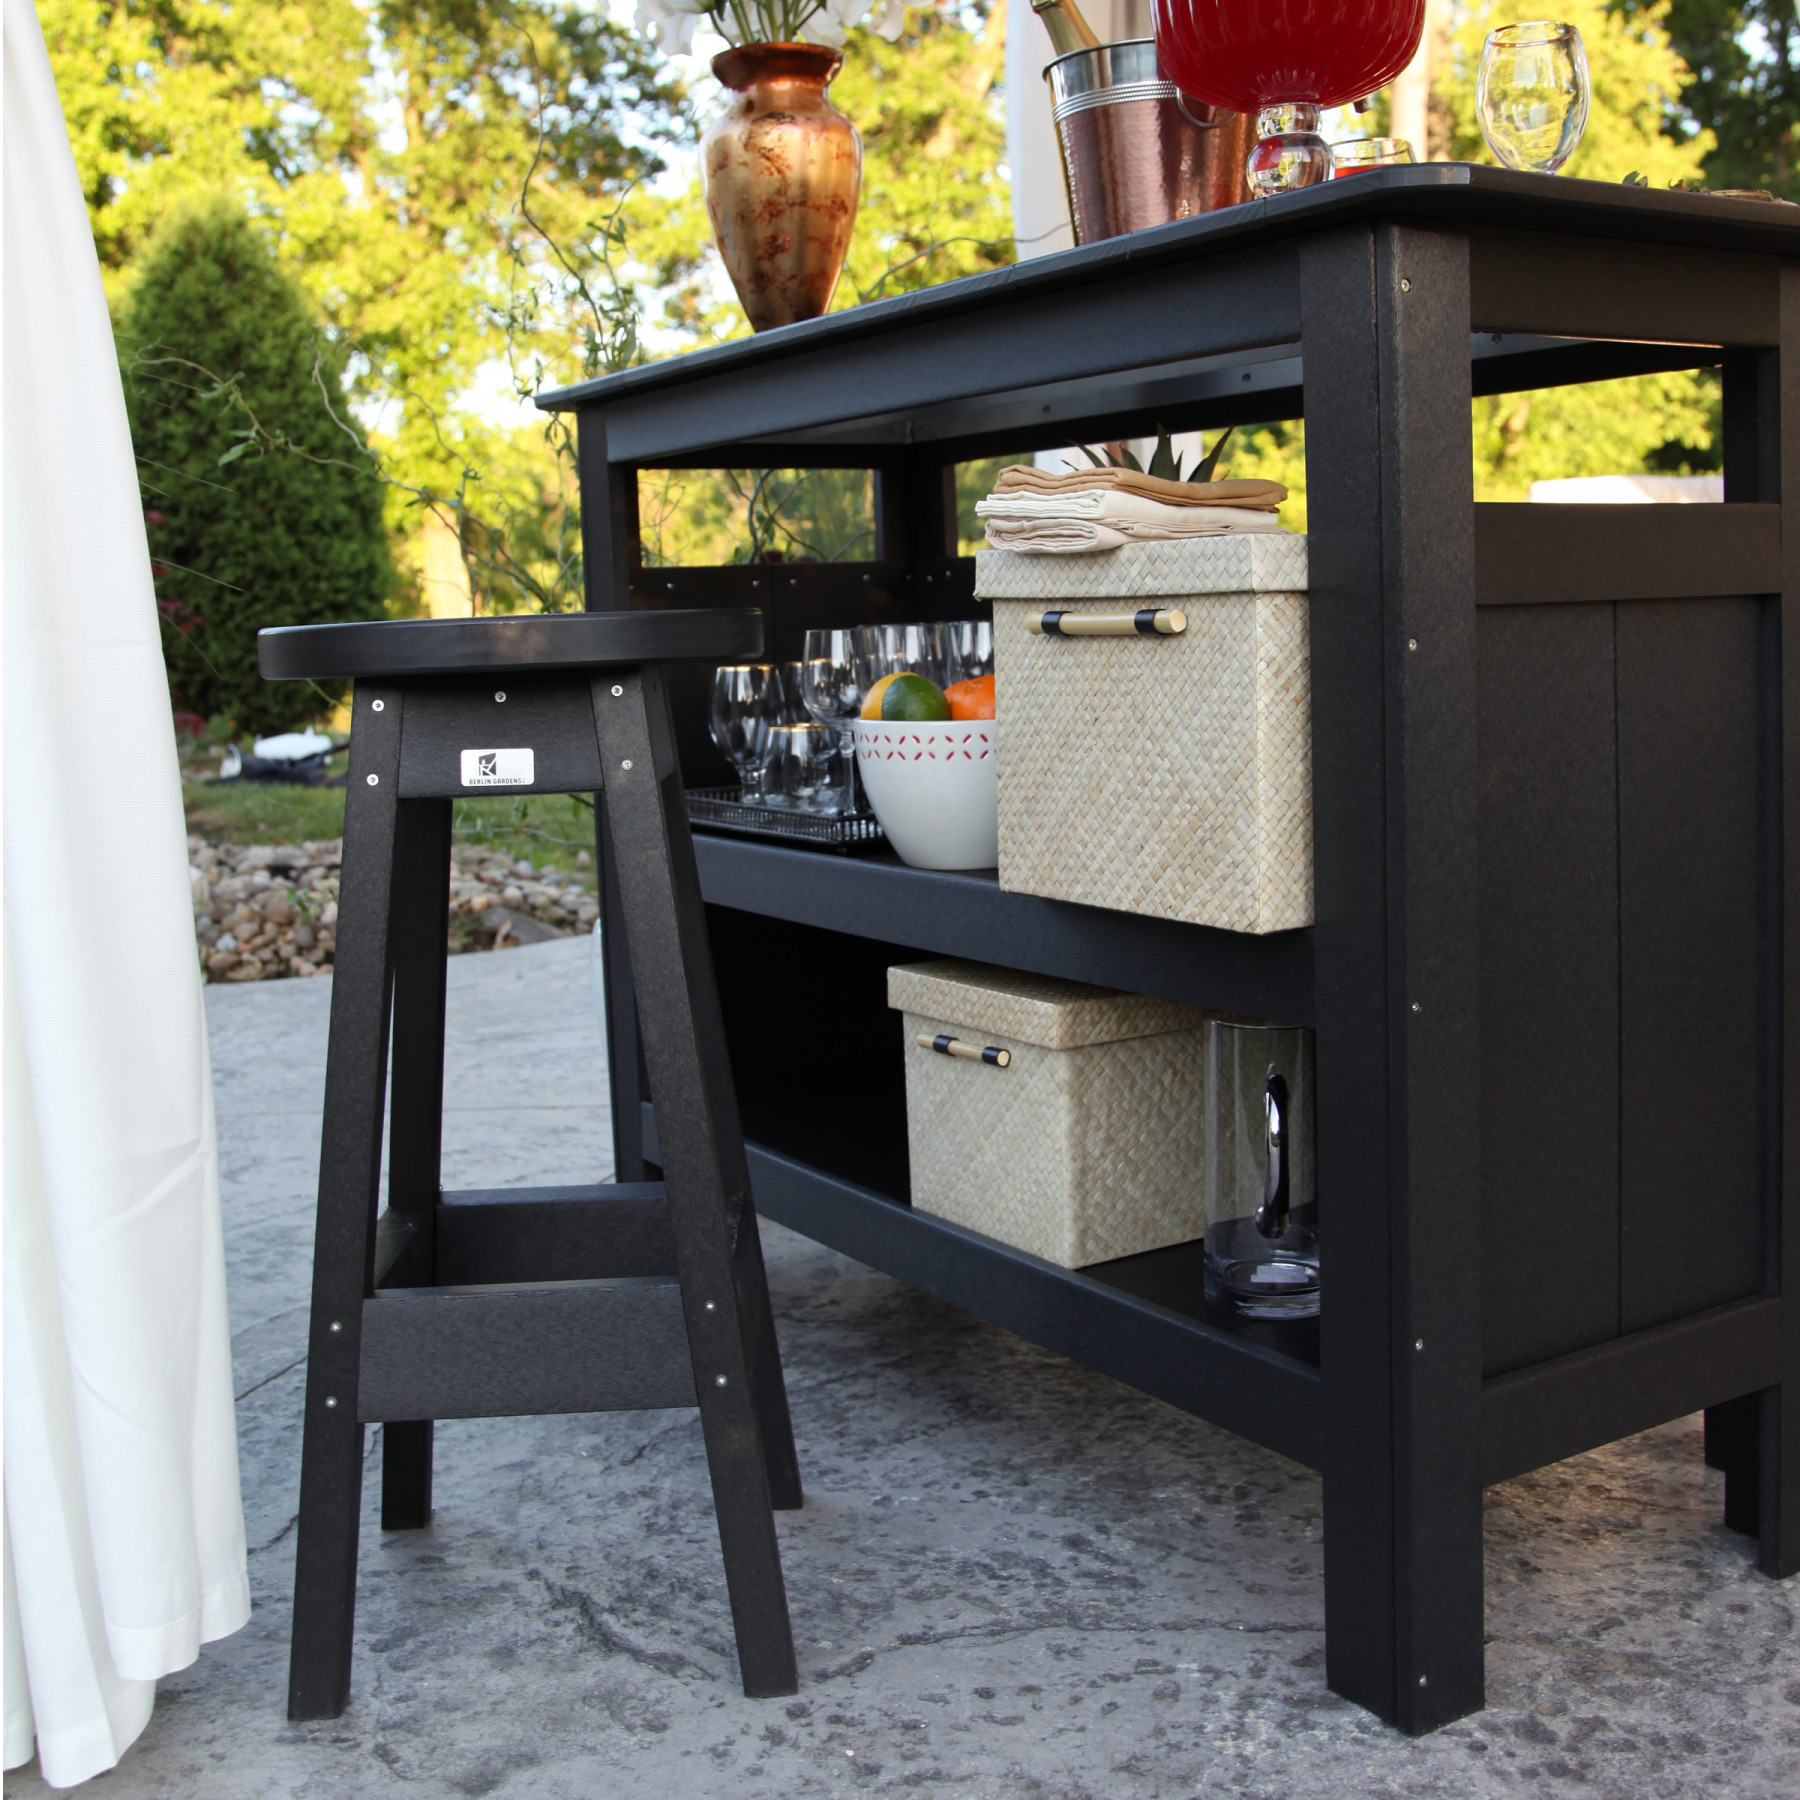 Berlin Gardens Outdoor Poly Bar Bars Benches Picnic Tables Berlin Gardens Poly Furniture